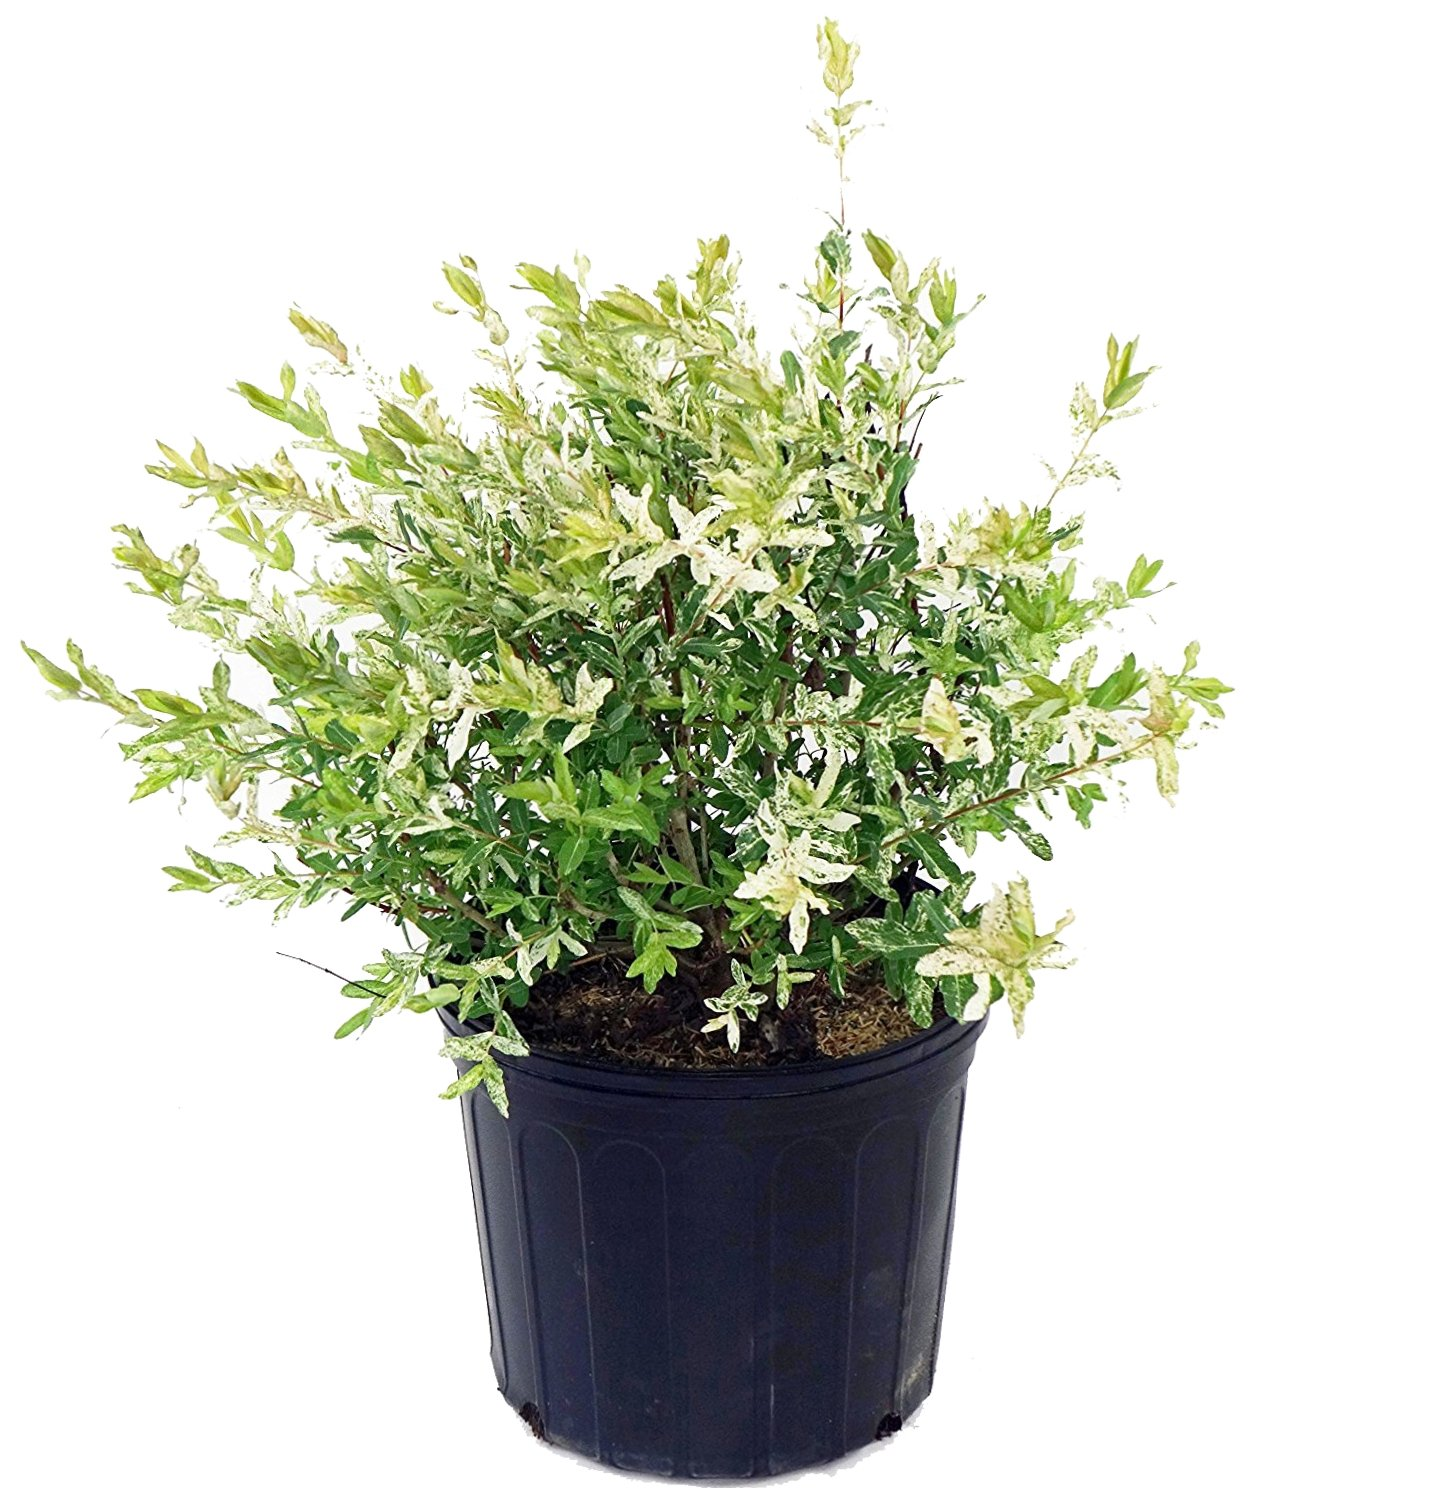 Green Promise Farms -  Salix `Hakaro Nishiki' (Dappled Willow)Shrub,  #3 -Size Container by Green Promise Farms